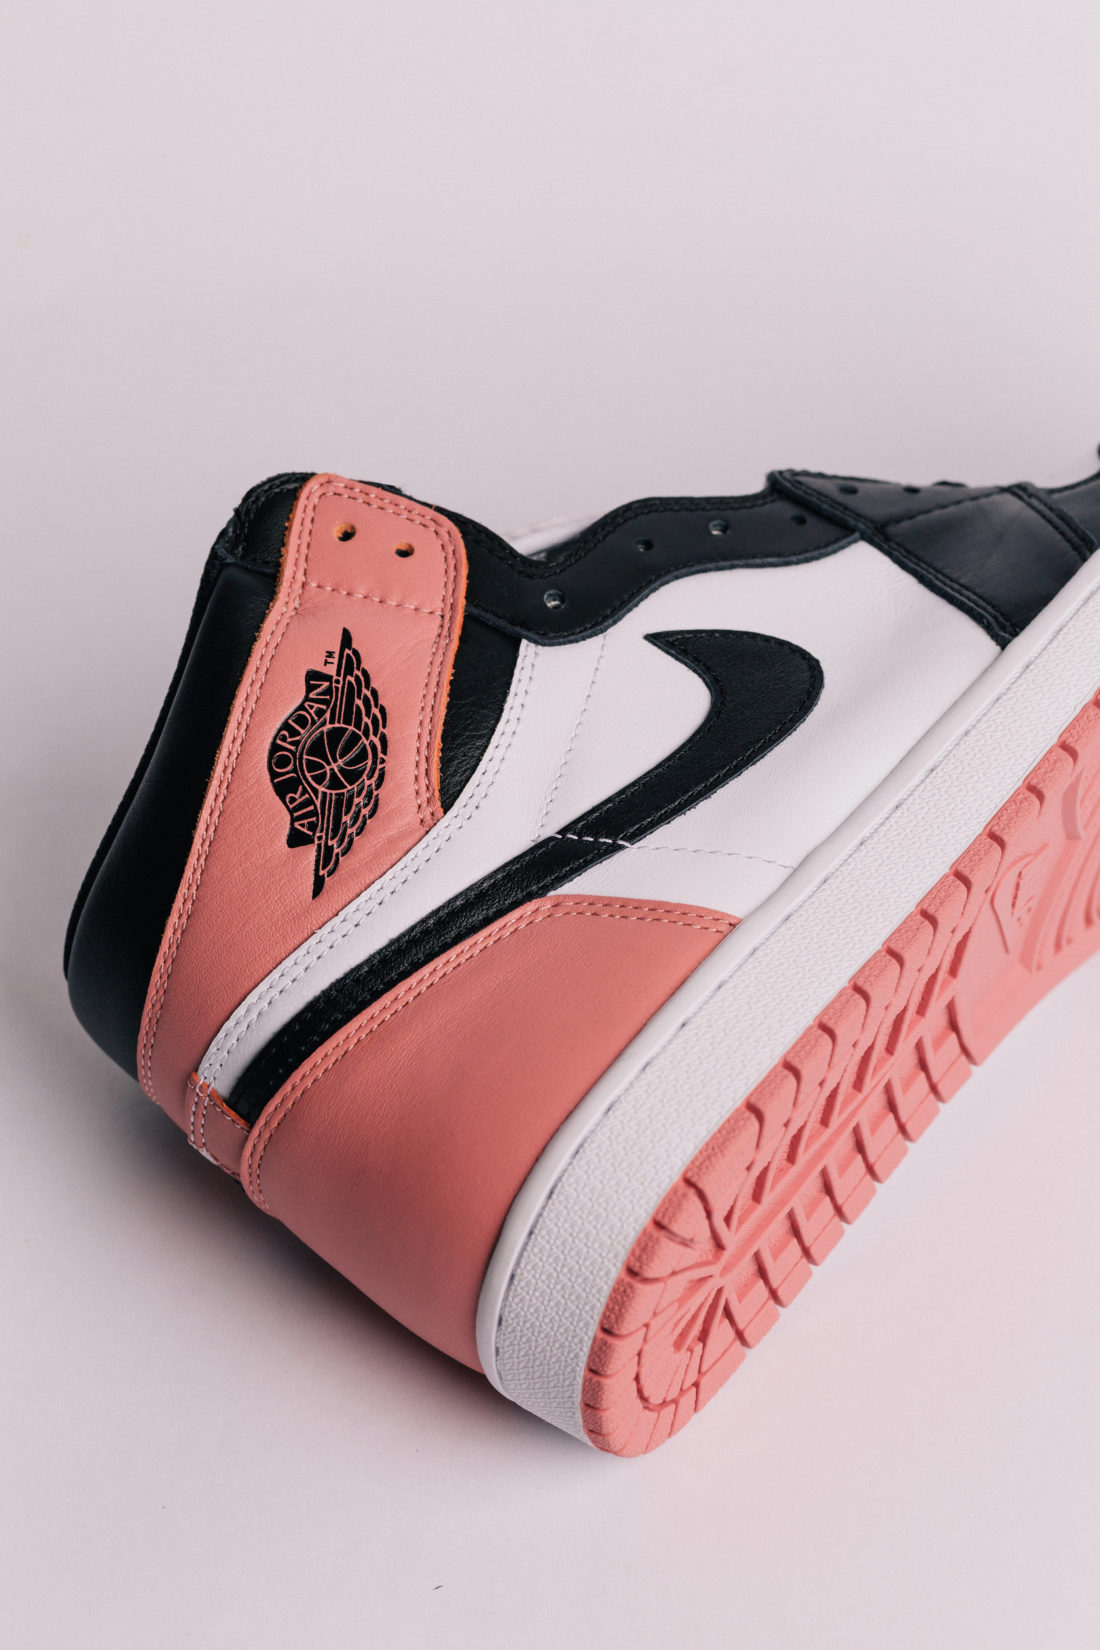 reputable site de137 6c7e2 Air Jordan 1 Rust Pink - StockX News